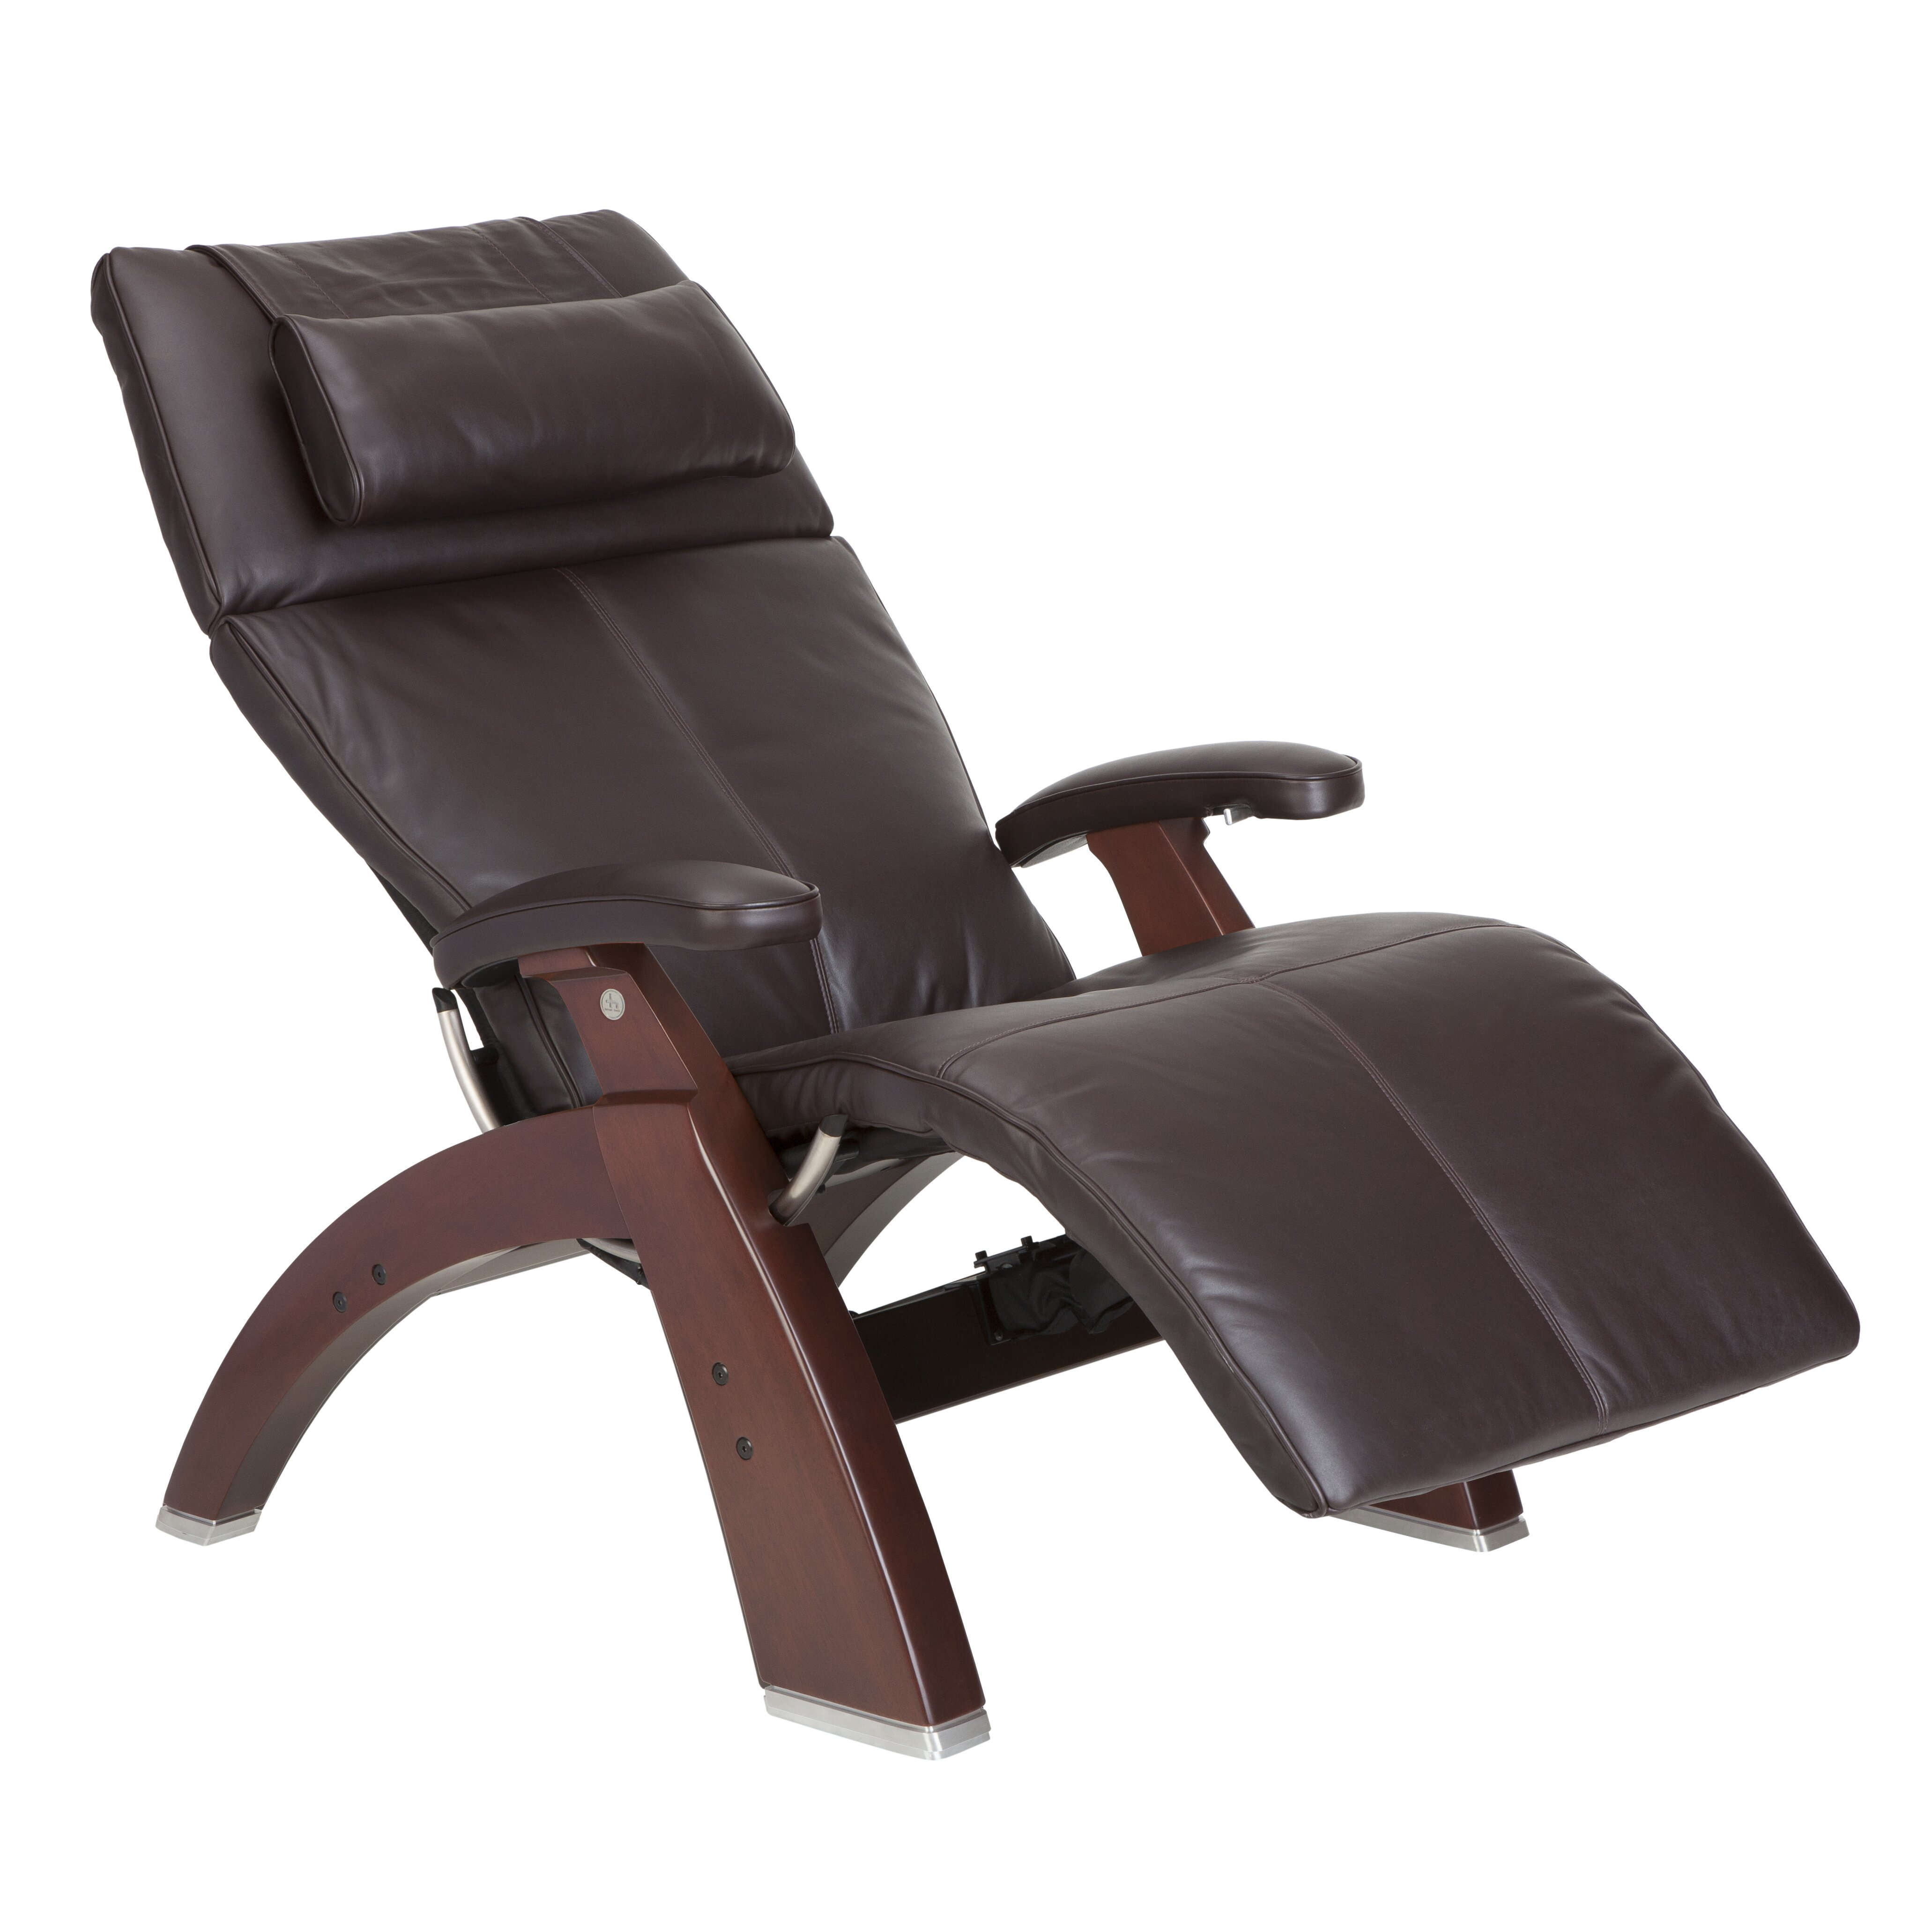 Storage Idea For Small Bathroom Human Touch Perfect Chair Quot Pc 500 Quot Silhouette Leather Zero